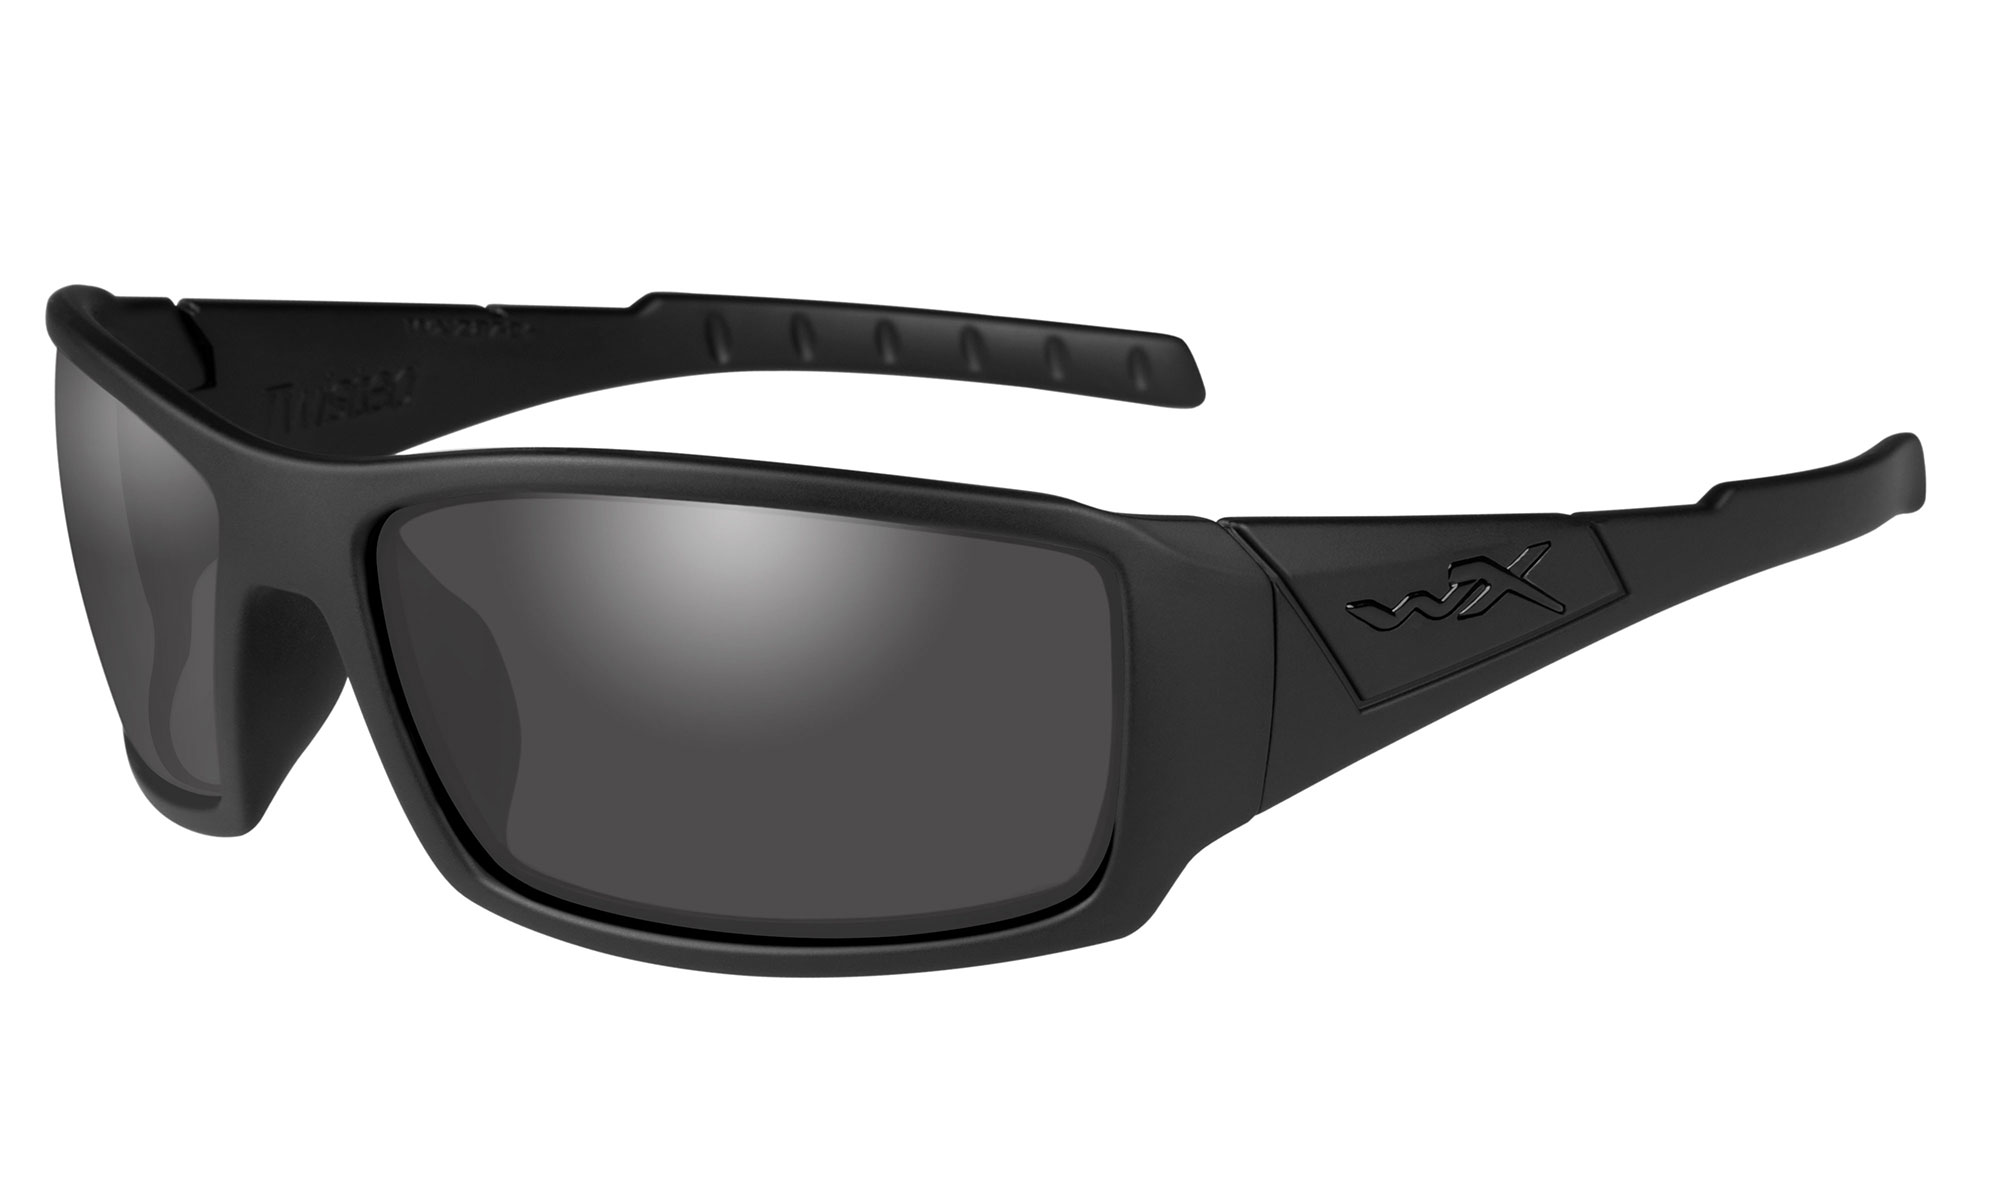 1a9a938fc6558 Wiley-X WX Twisted Matte Black with Polarized Smoke Grey Lenses ...